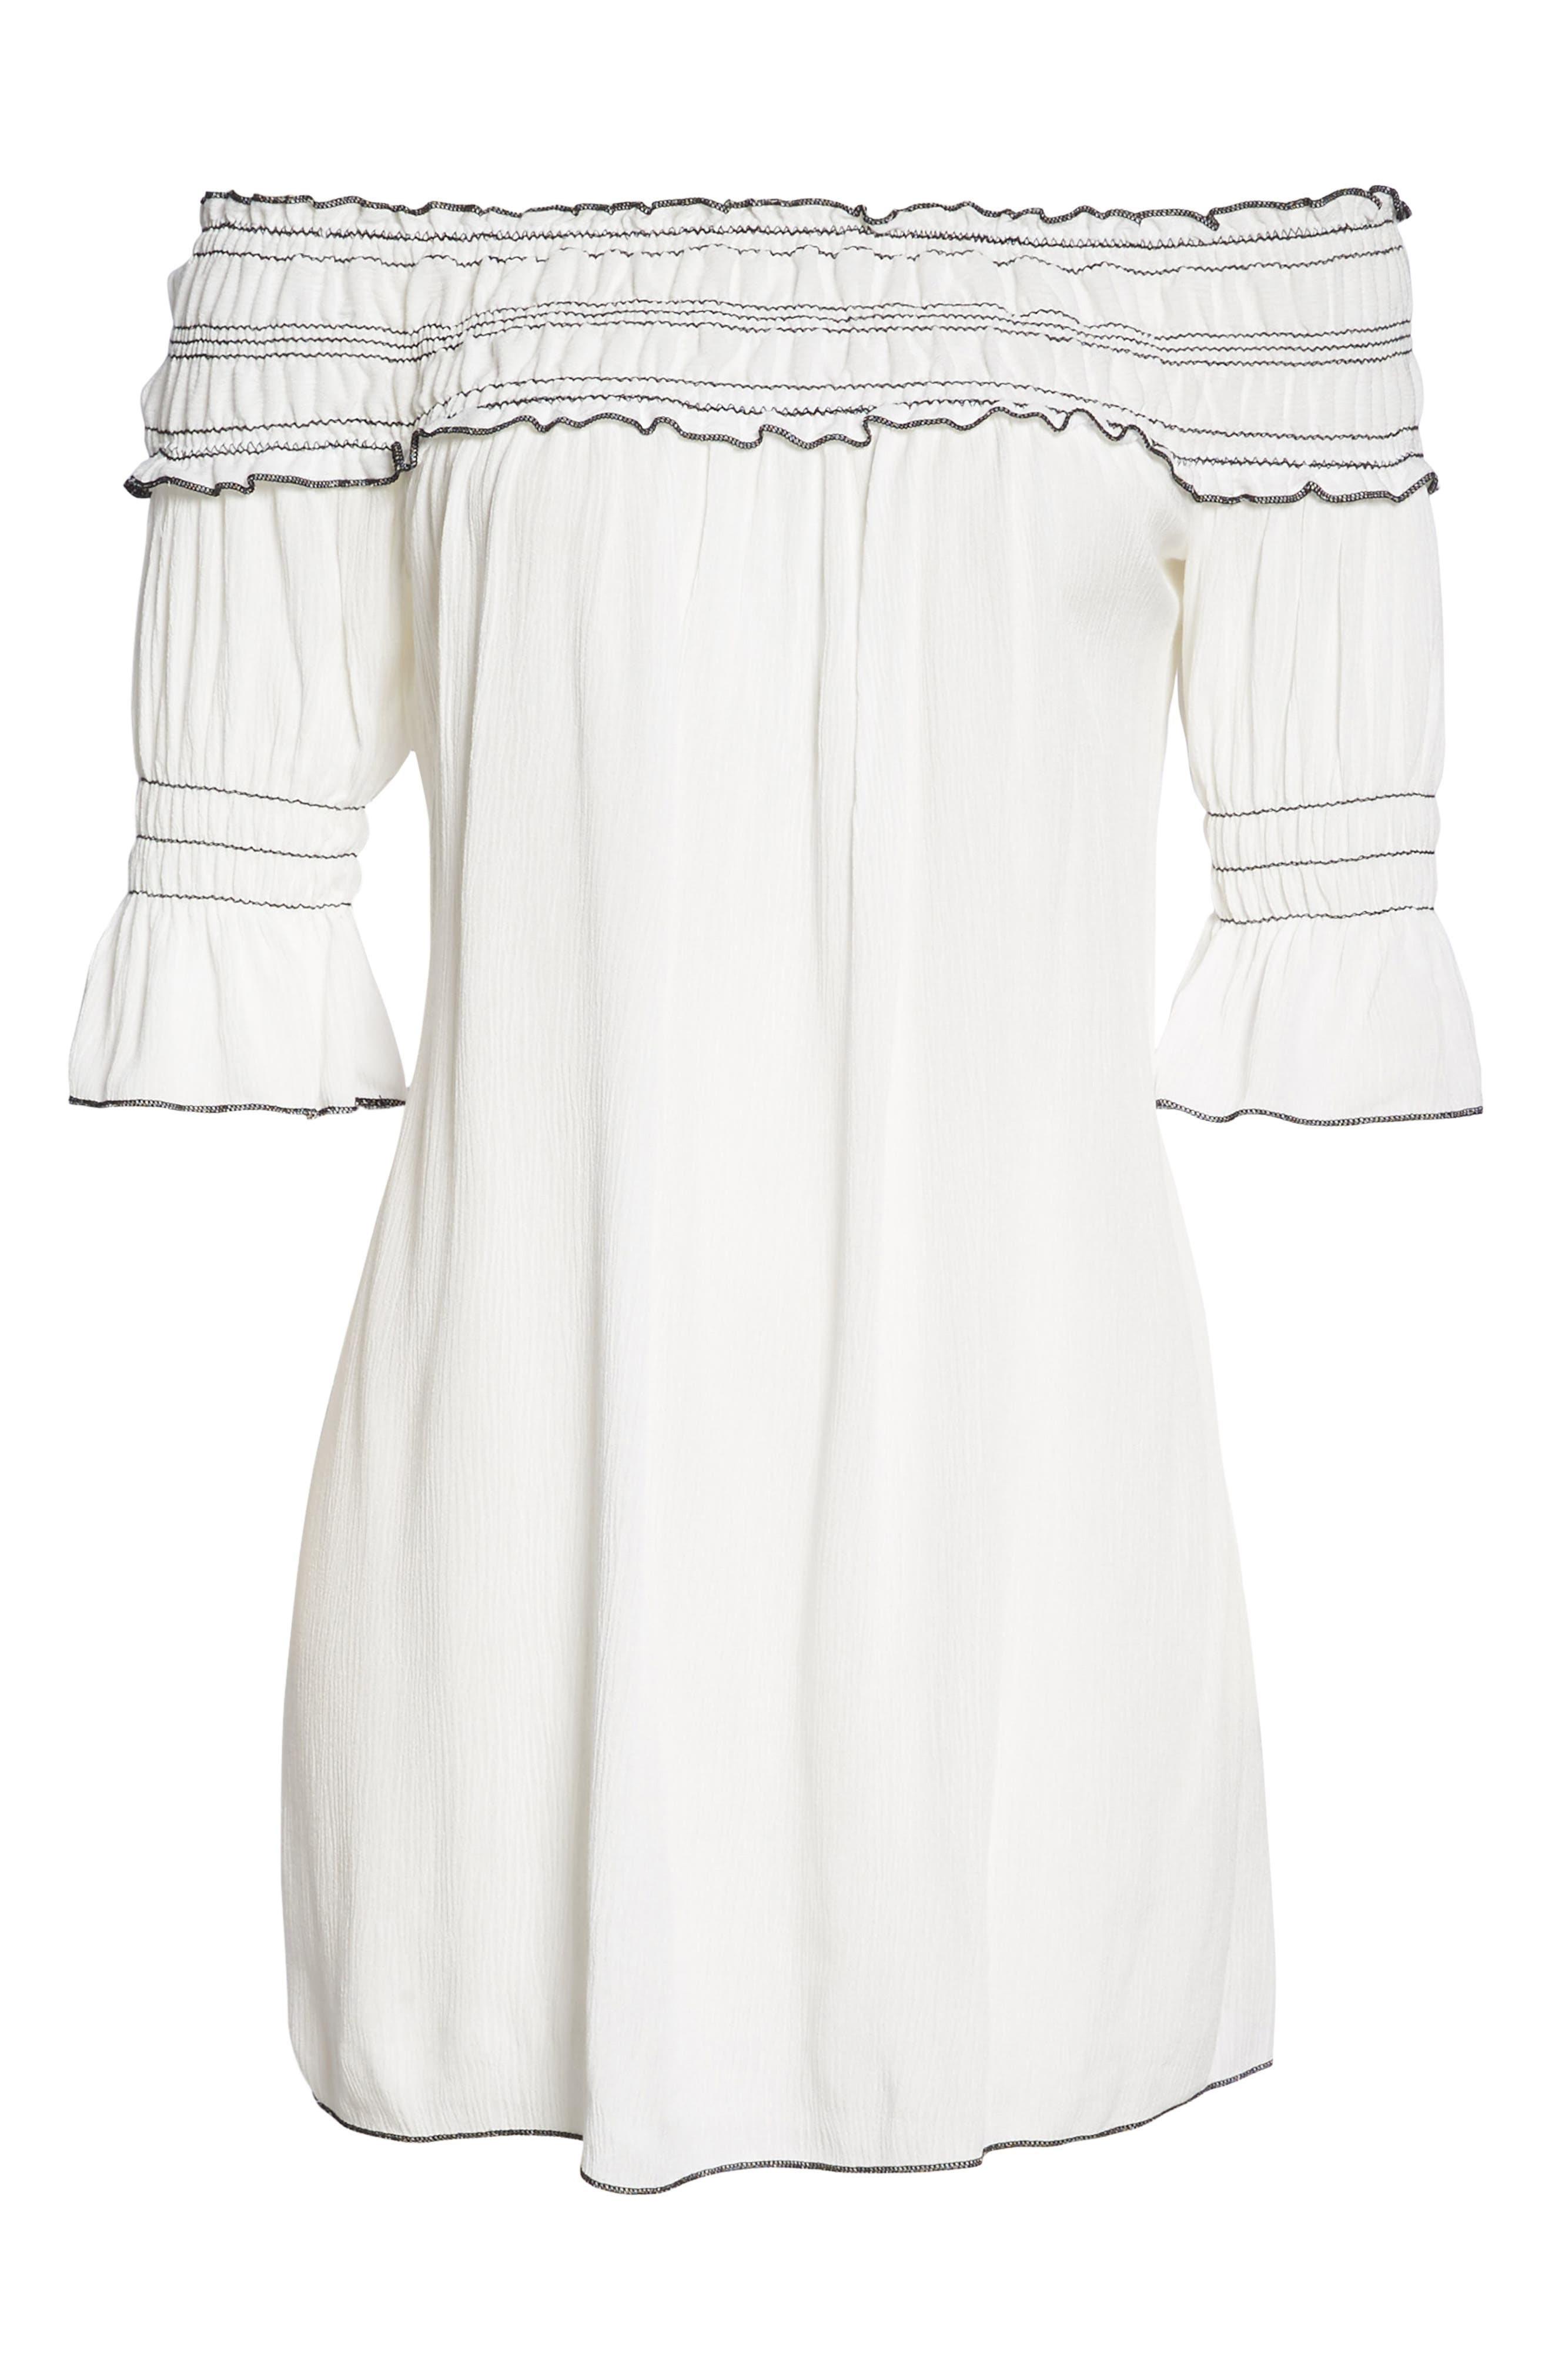 Nightingale Off the Shoulder Cover-Up Dress,                             Alternate thumbnail 6, color,                             White